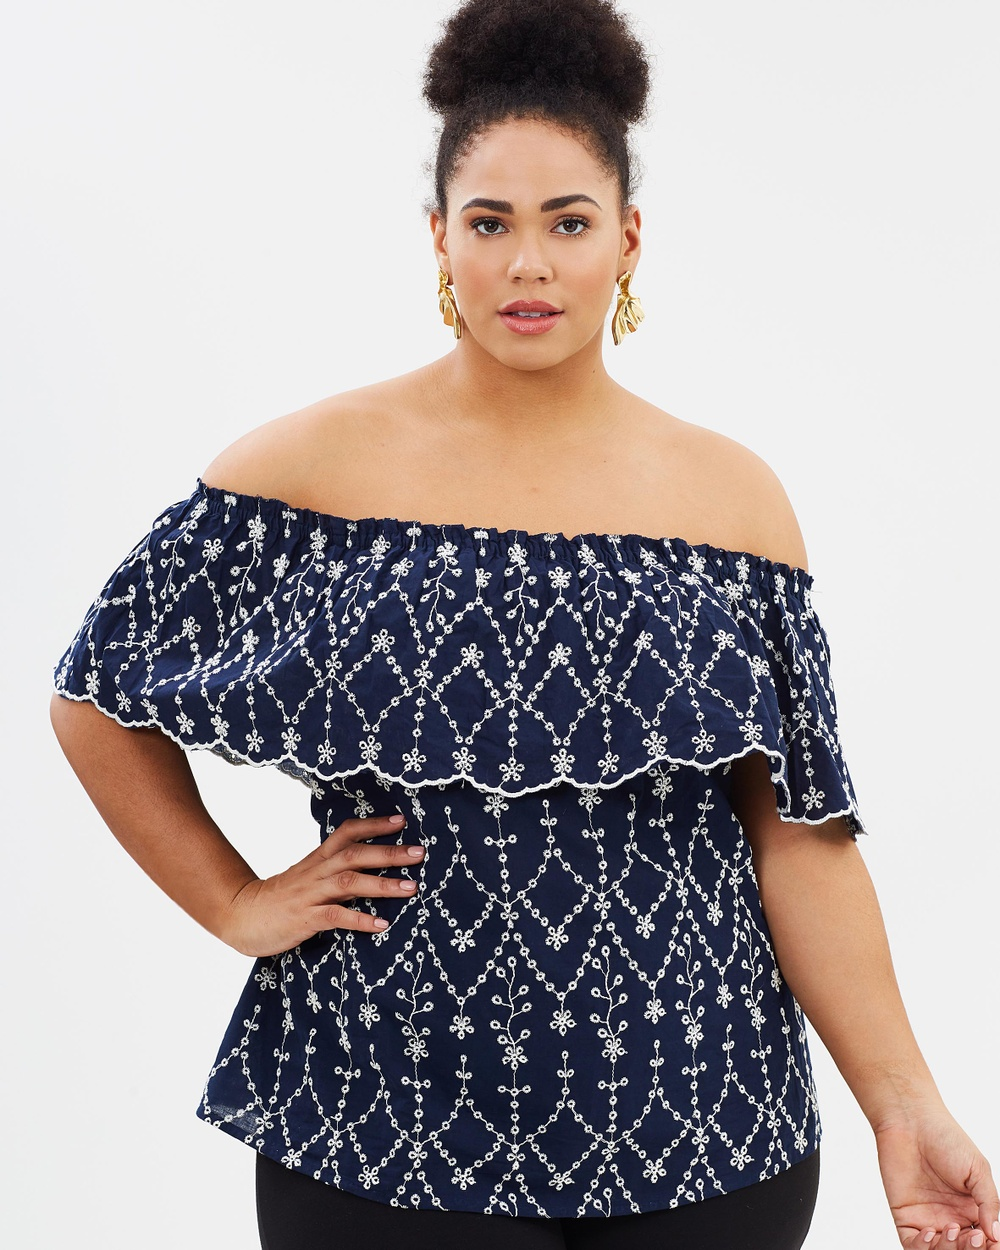 Photo of EVANS EVANS Navy Blue Cutwork Top Tops Navy Navy Blue Cutwork Top - For form-flattering fashion that celebrates your curves, look no further than EVANS. The Navy Blue Cutwork Top exudes femininity with an off-the-shoulder flounce and intricate broderie anglaise detailing throughout. Pair with denim and leather slides for effortless weekend cool. Our model is wearing a size AU 18 top. She is 179.1cm (5'10.5